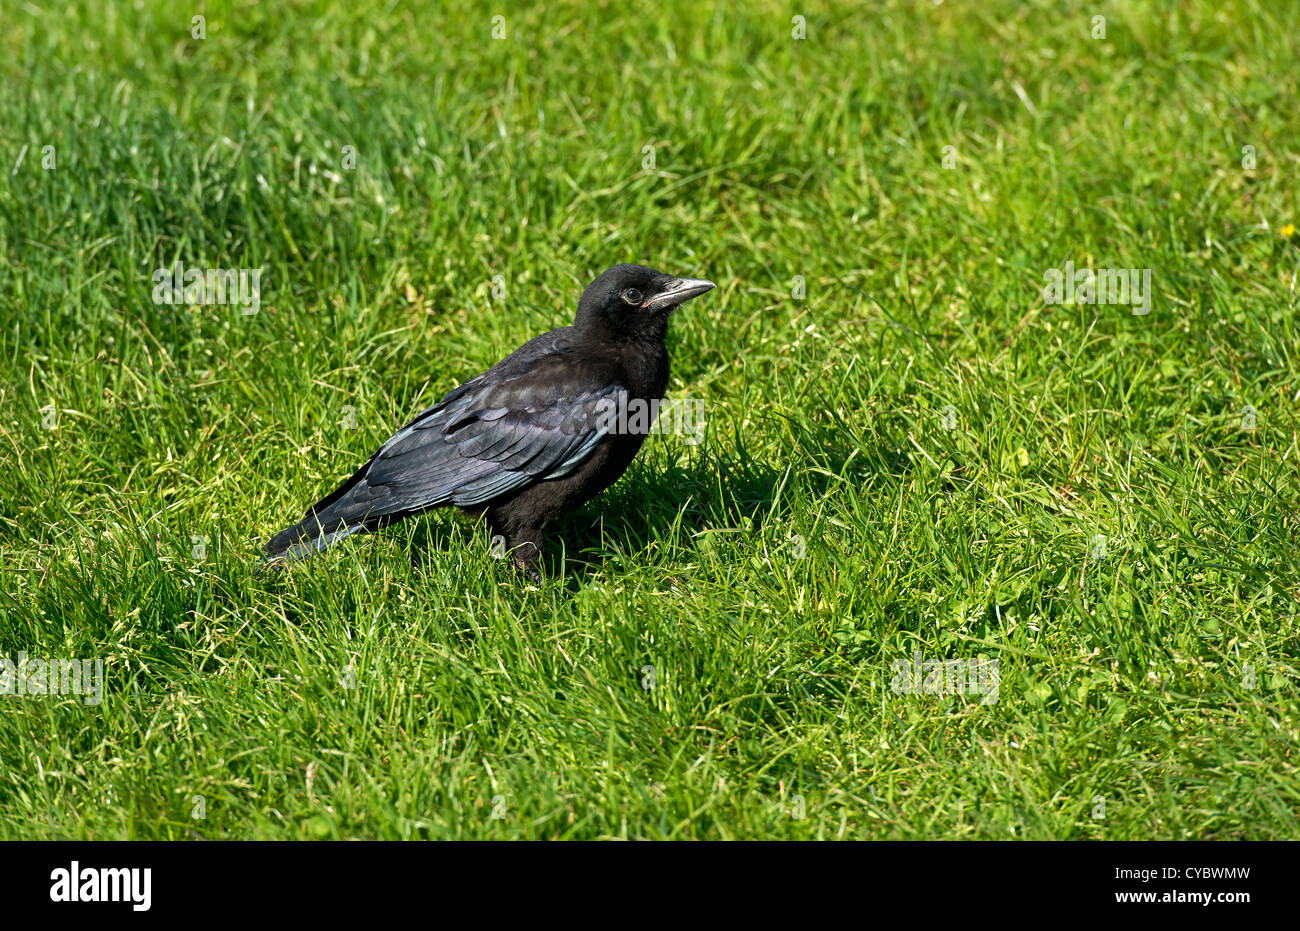 Rook juvenile on grass - Stock Image